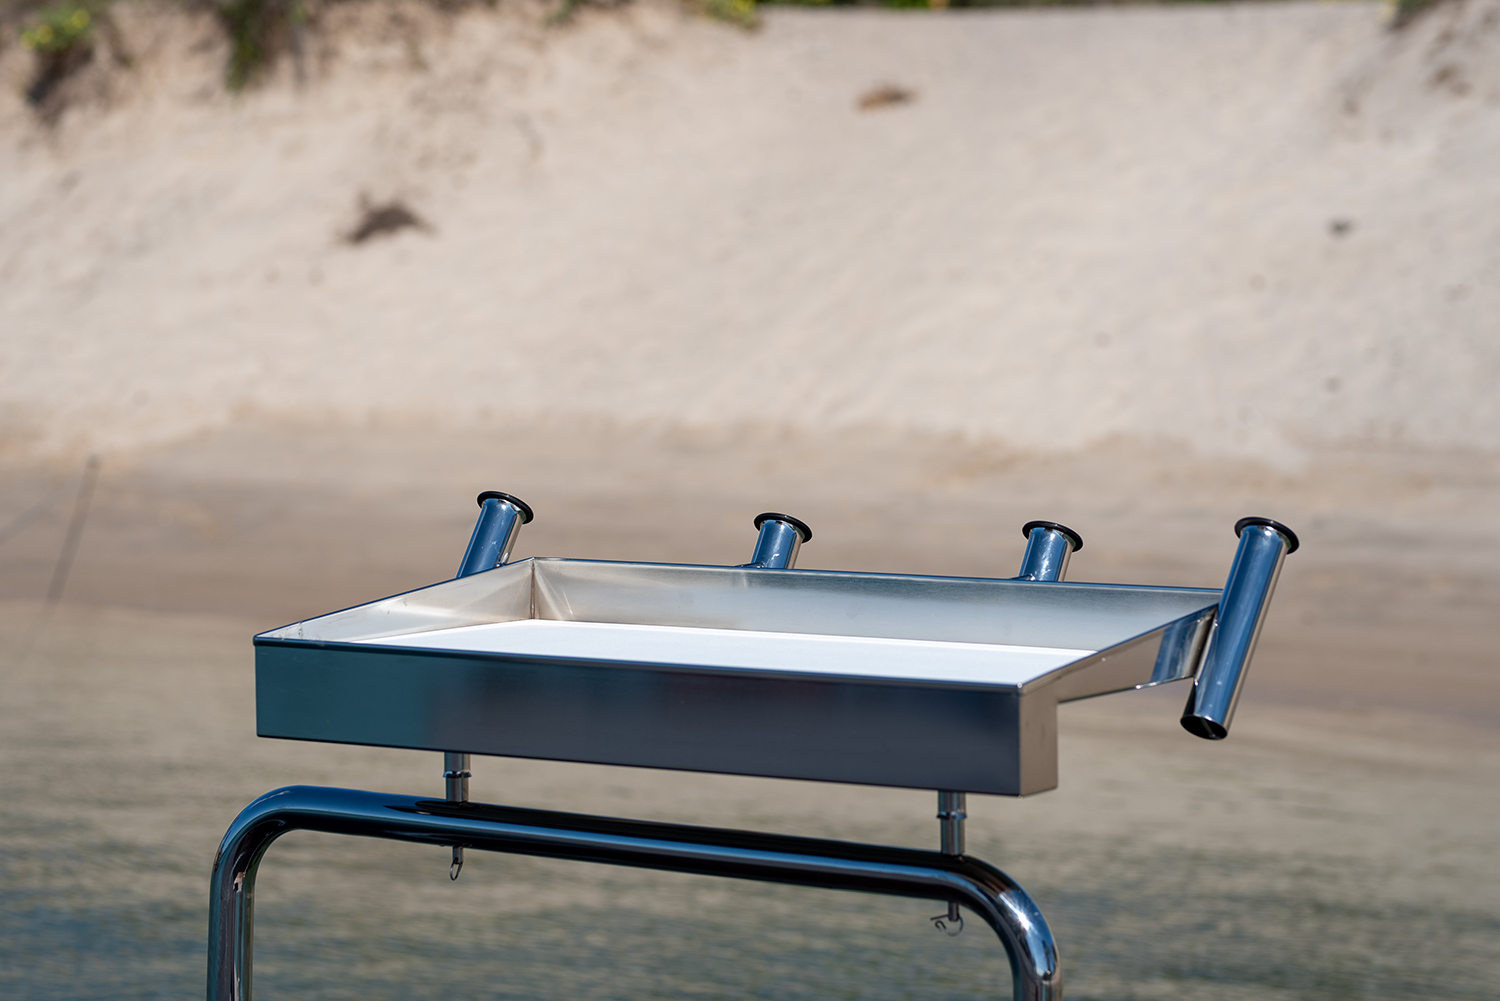 Barracuda stainless bait board with rod holders